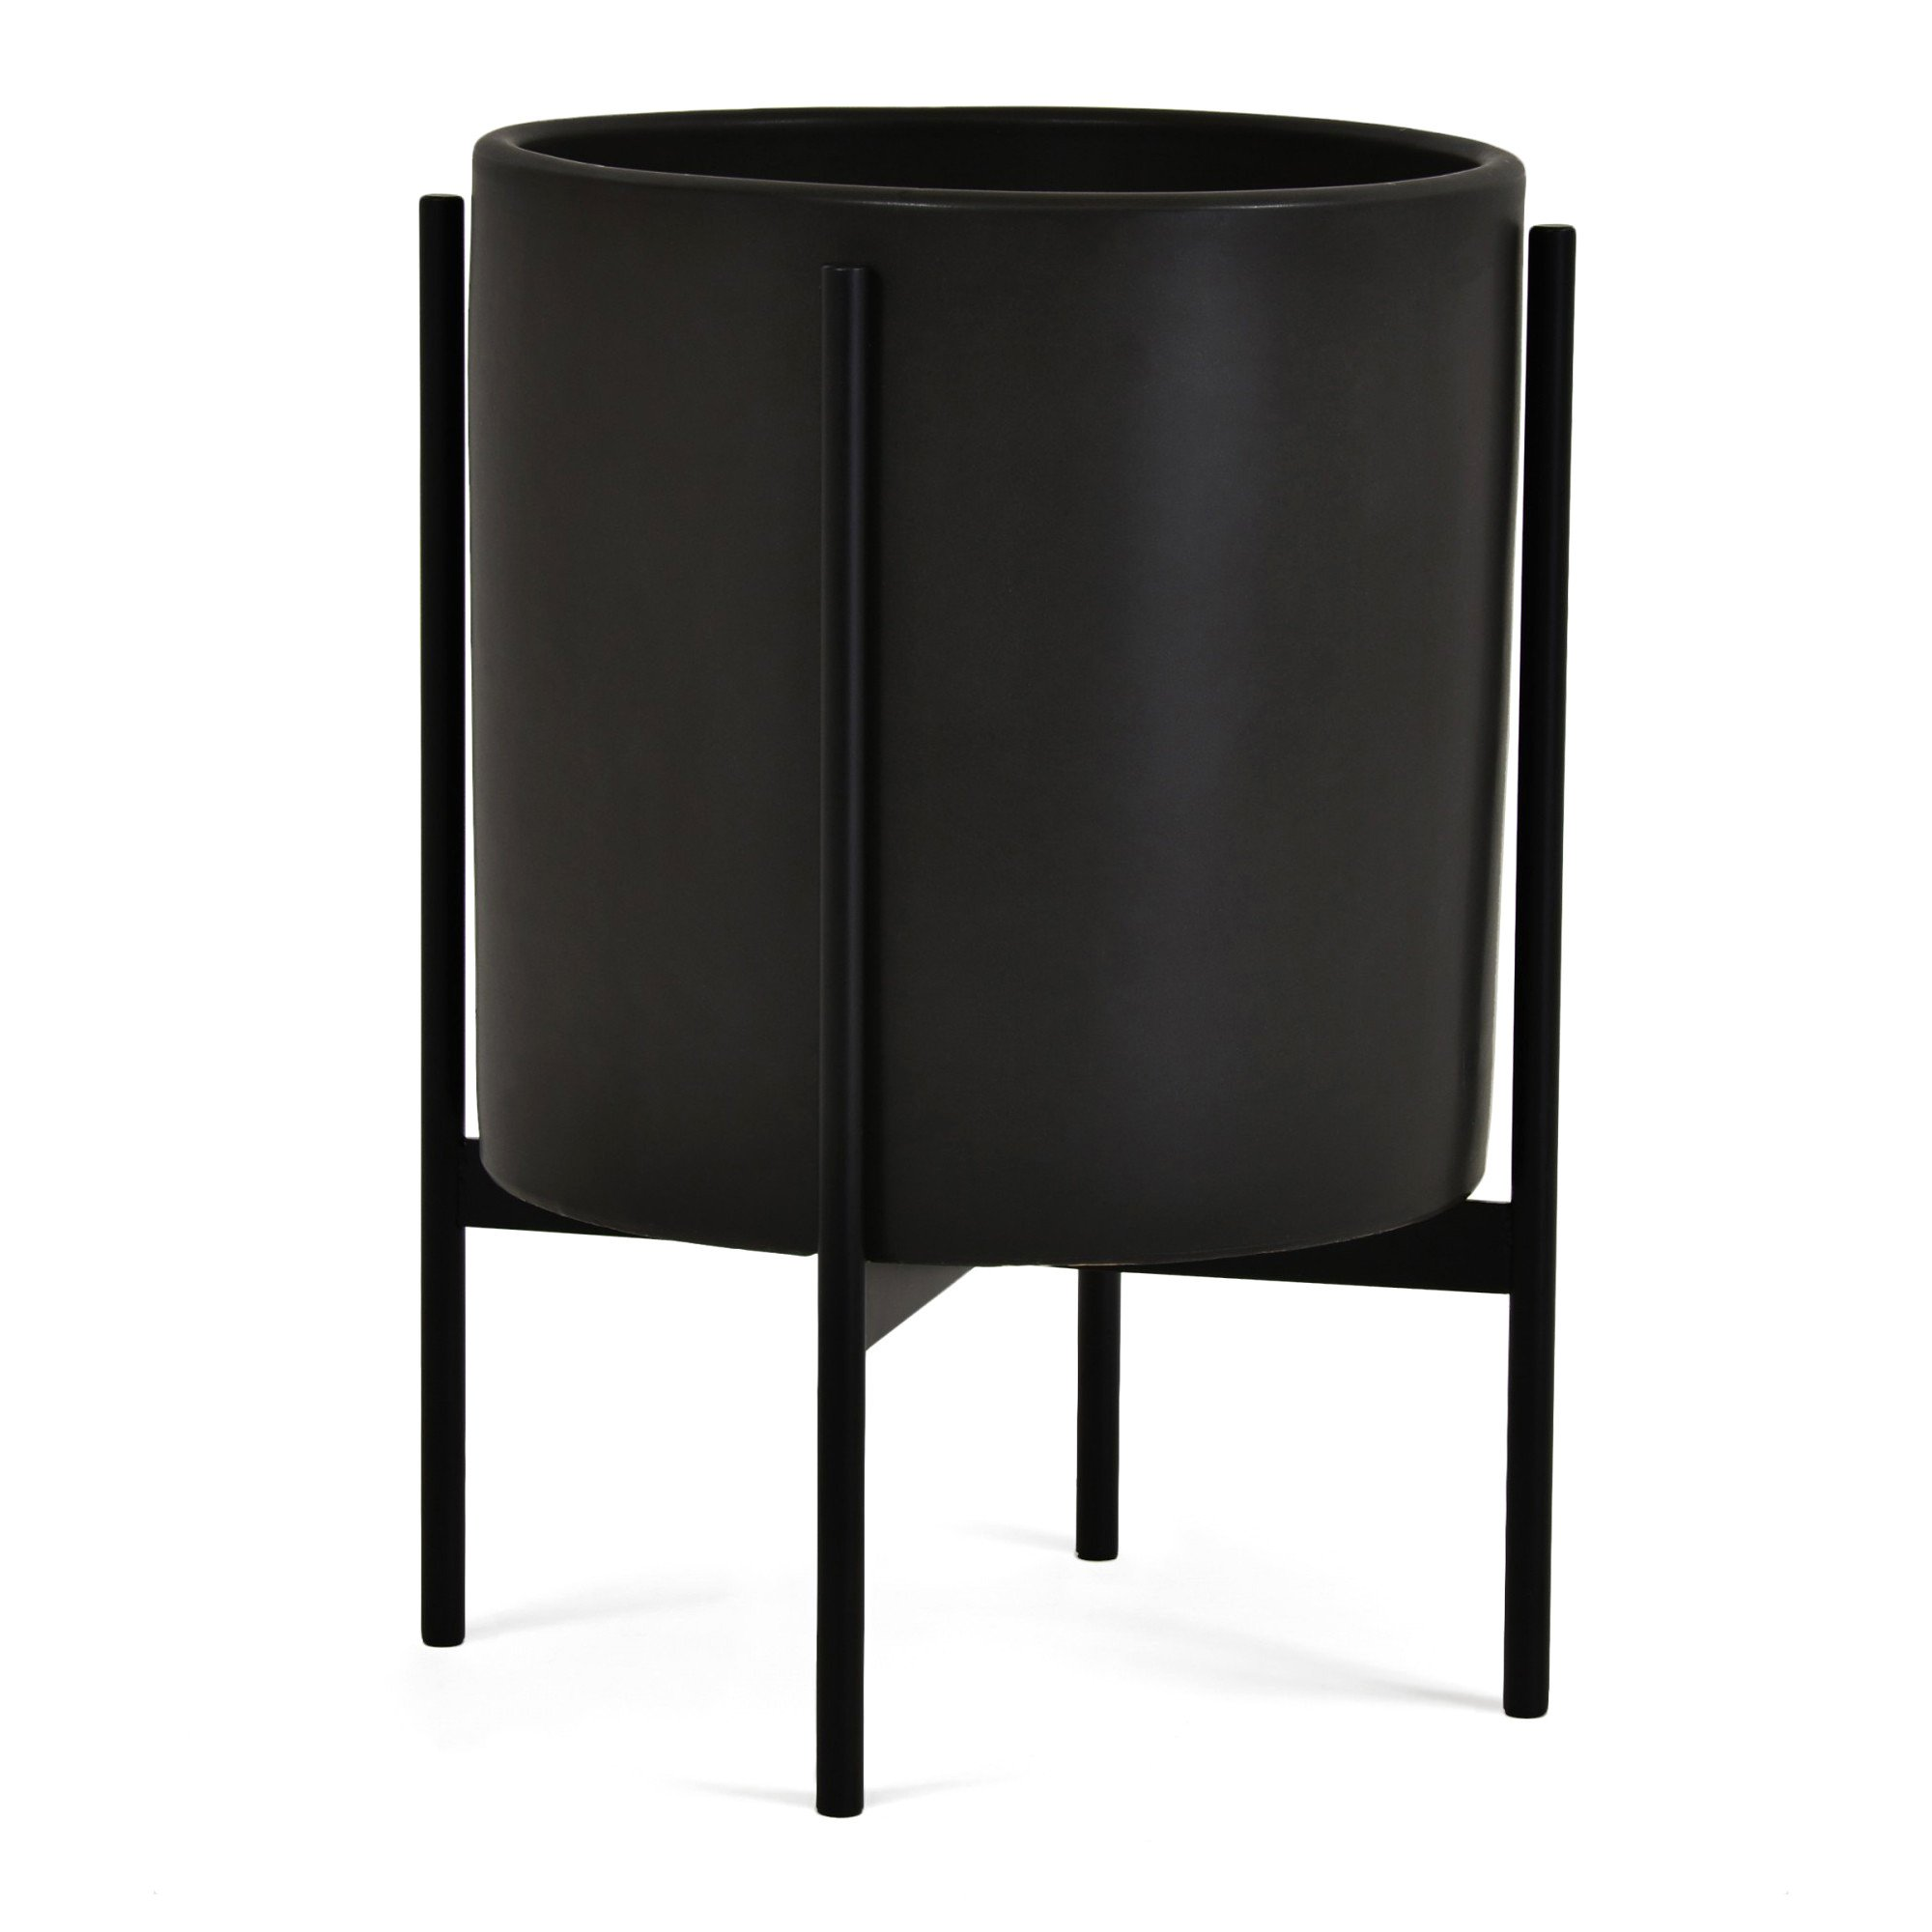 ALL-SORTS-OF-SHOPPE-CASE-STUDY-MODERNICA-PLANTER-CHARCOAL